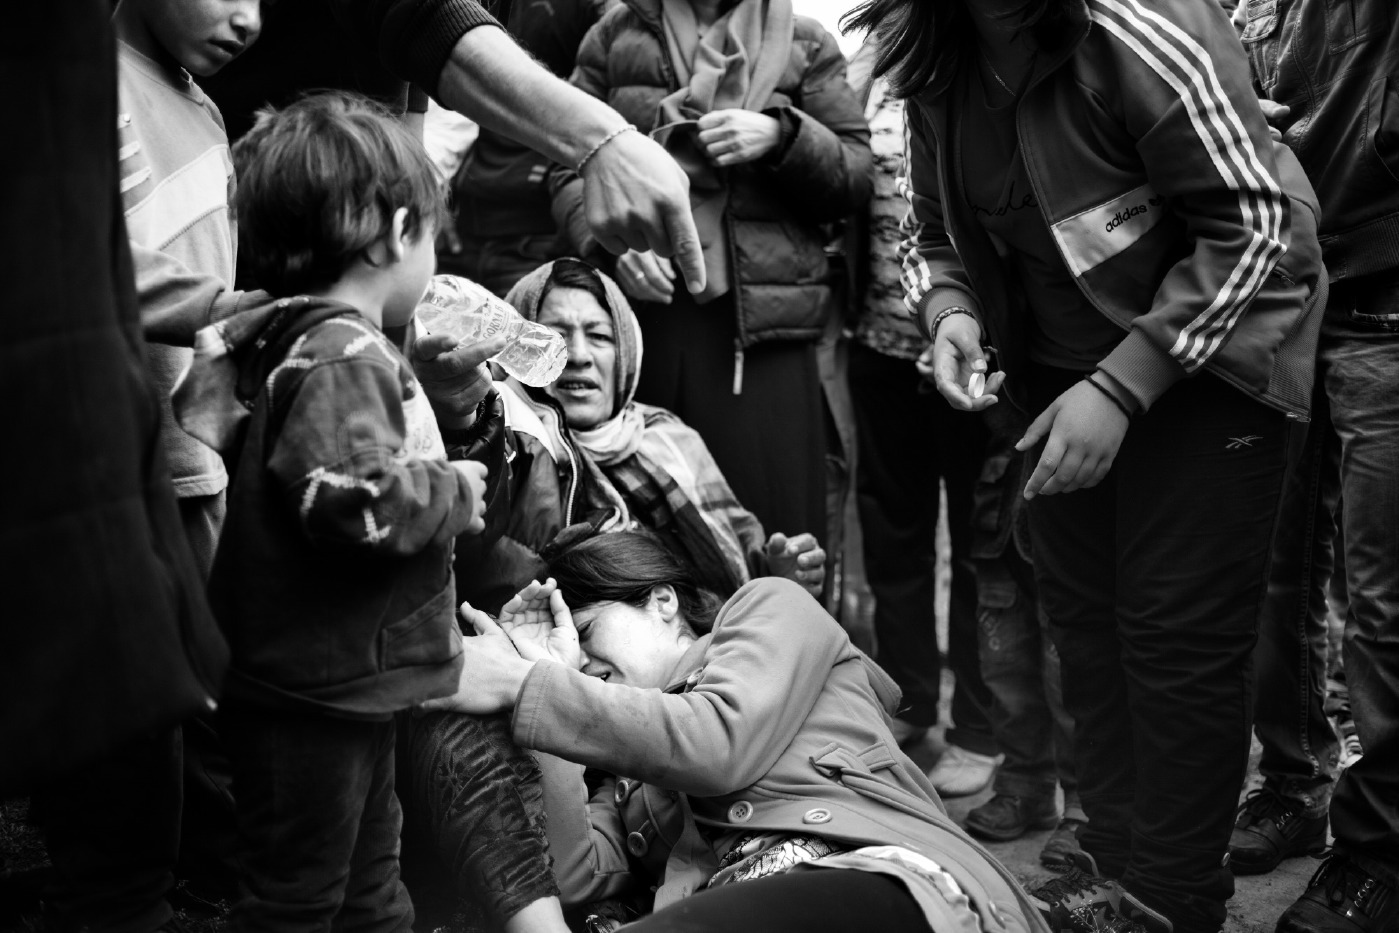 A girl lies on the ground in her mother's arms after she was hit by a policeman during clashes between the police force and refugees. The asylum seekers organized a protest after an official visit of the former European Commissioner for Home Affairs, Mrs. Anna Cecilia Malmstrom, when she explained that with their Bulgarian documents they would not be able to leave Bulgaria, according to the Dublin Regulation. Harmanli, Bulgaria 2014. © Matteo Bastianelli